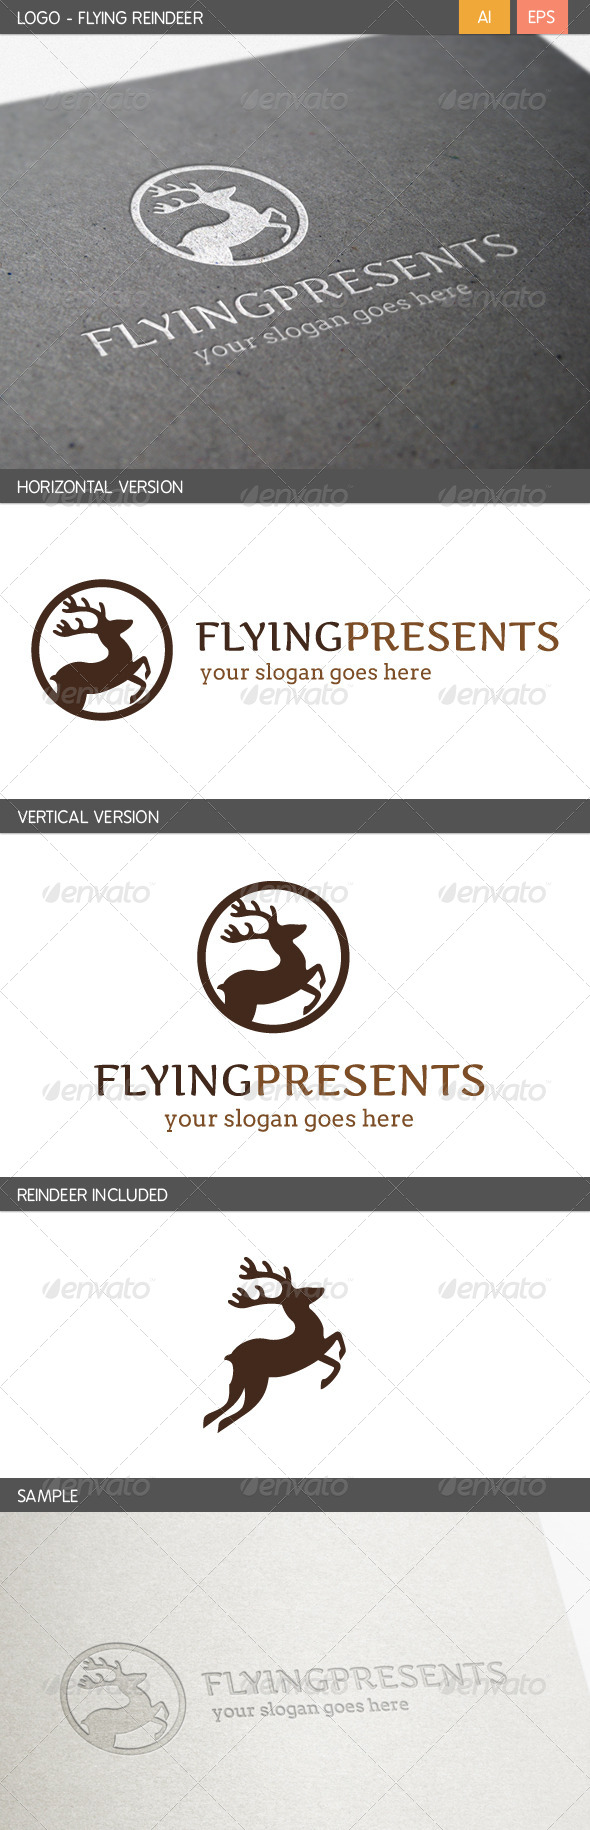 Flying Reindeer Logo - Animals Logo Templates